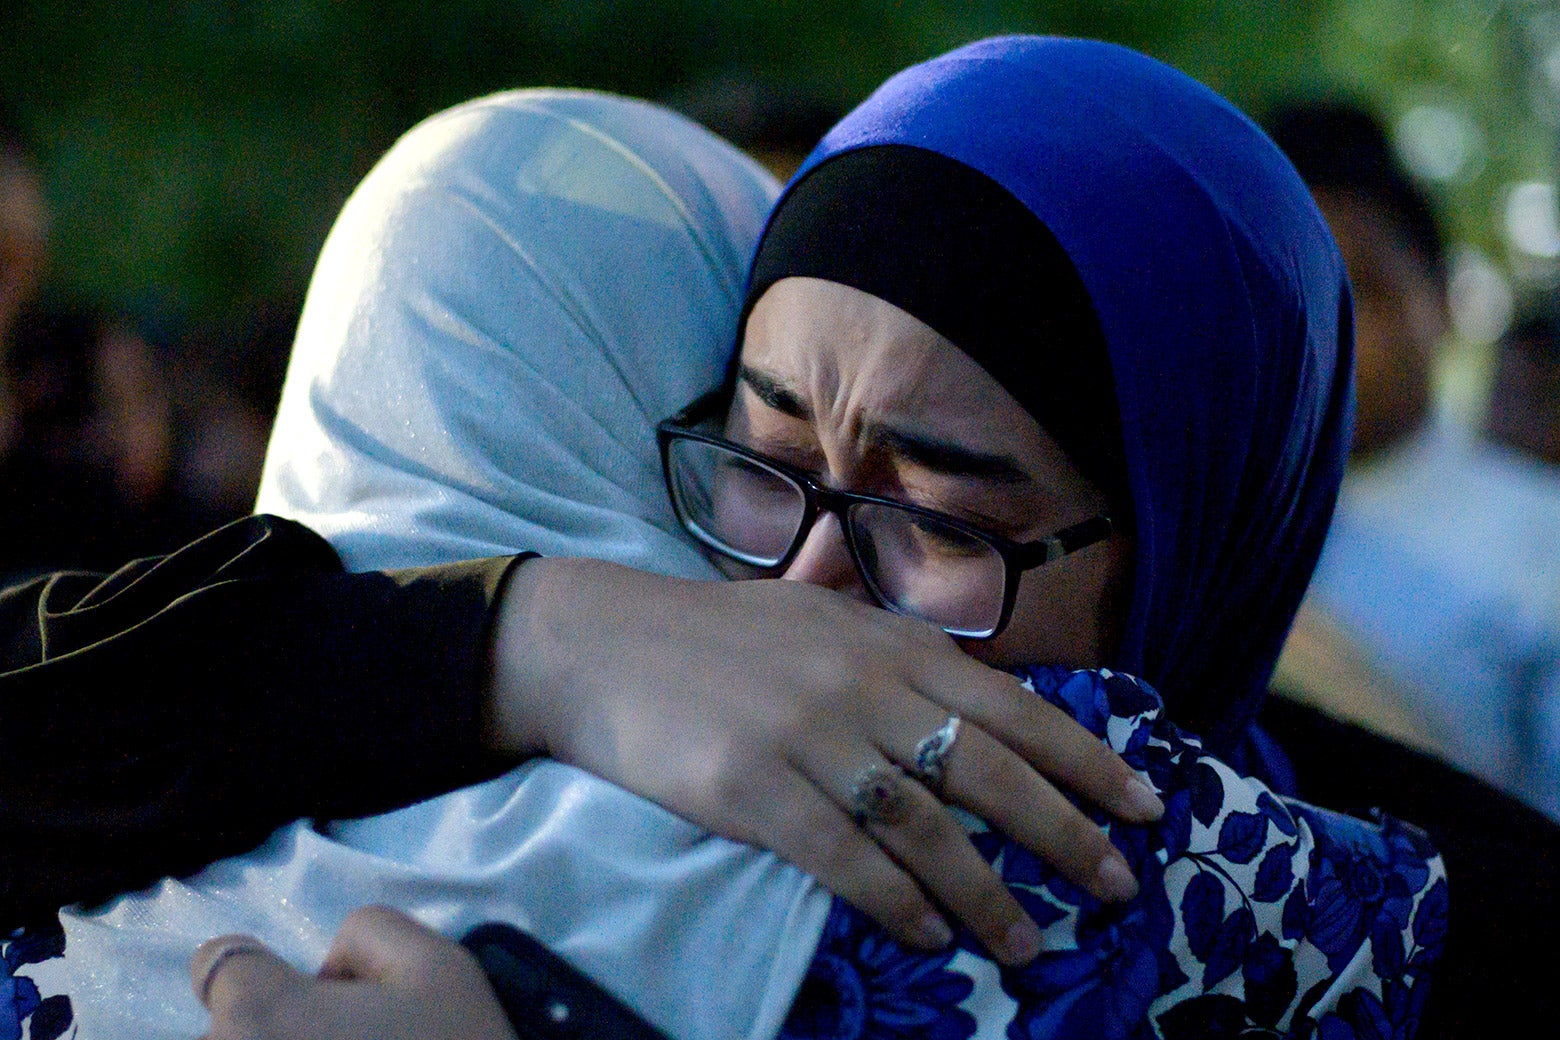 Two women wearing head scarves cry and hug.